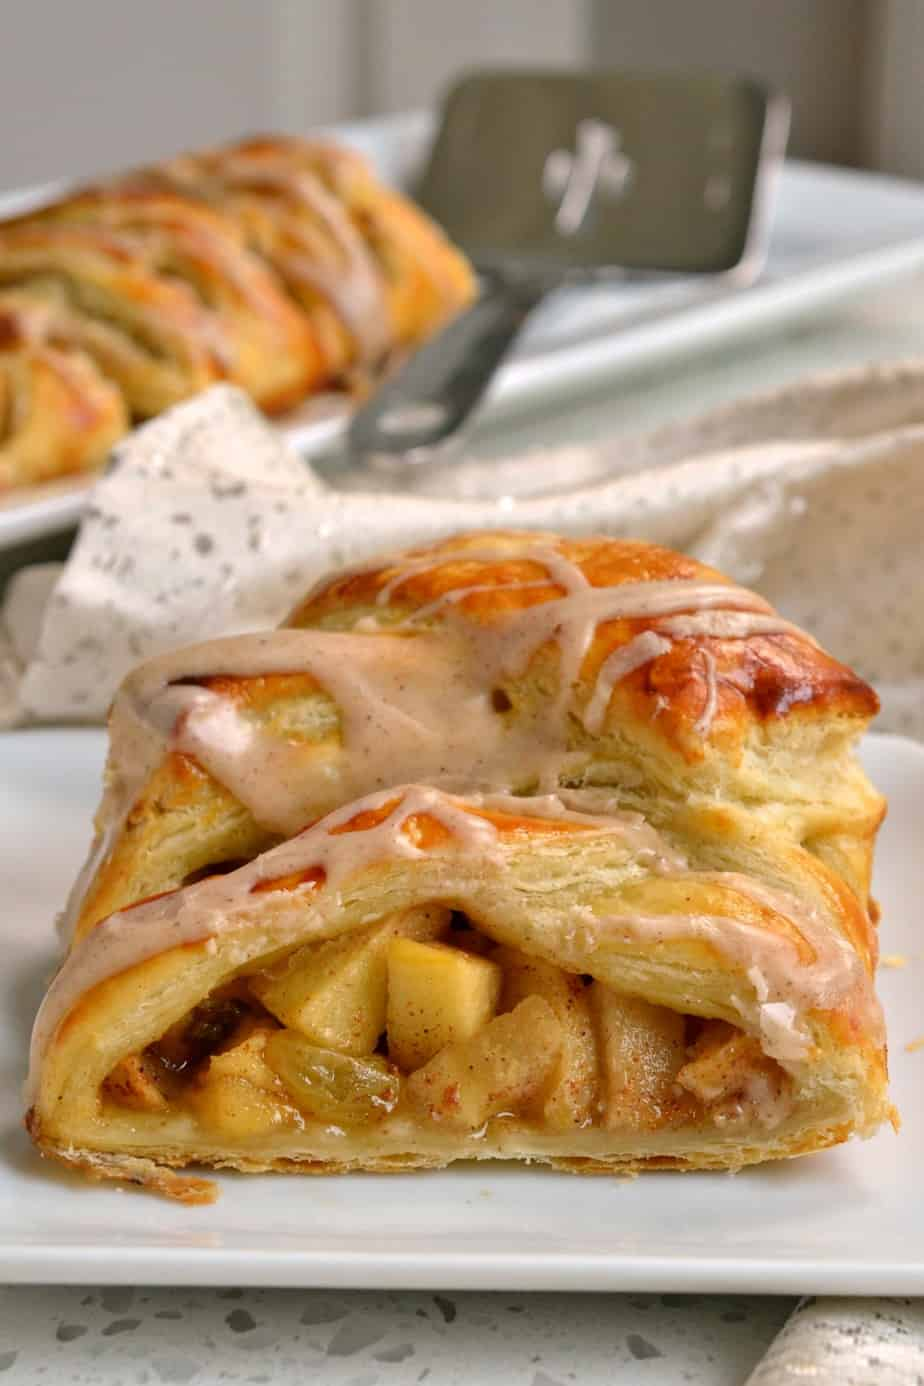 Make this gorgeous apple strudel for your next brunch, book club or evening soiree and impress your family and friends.